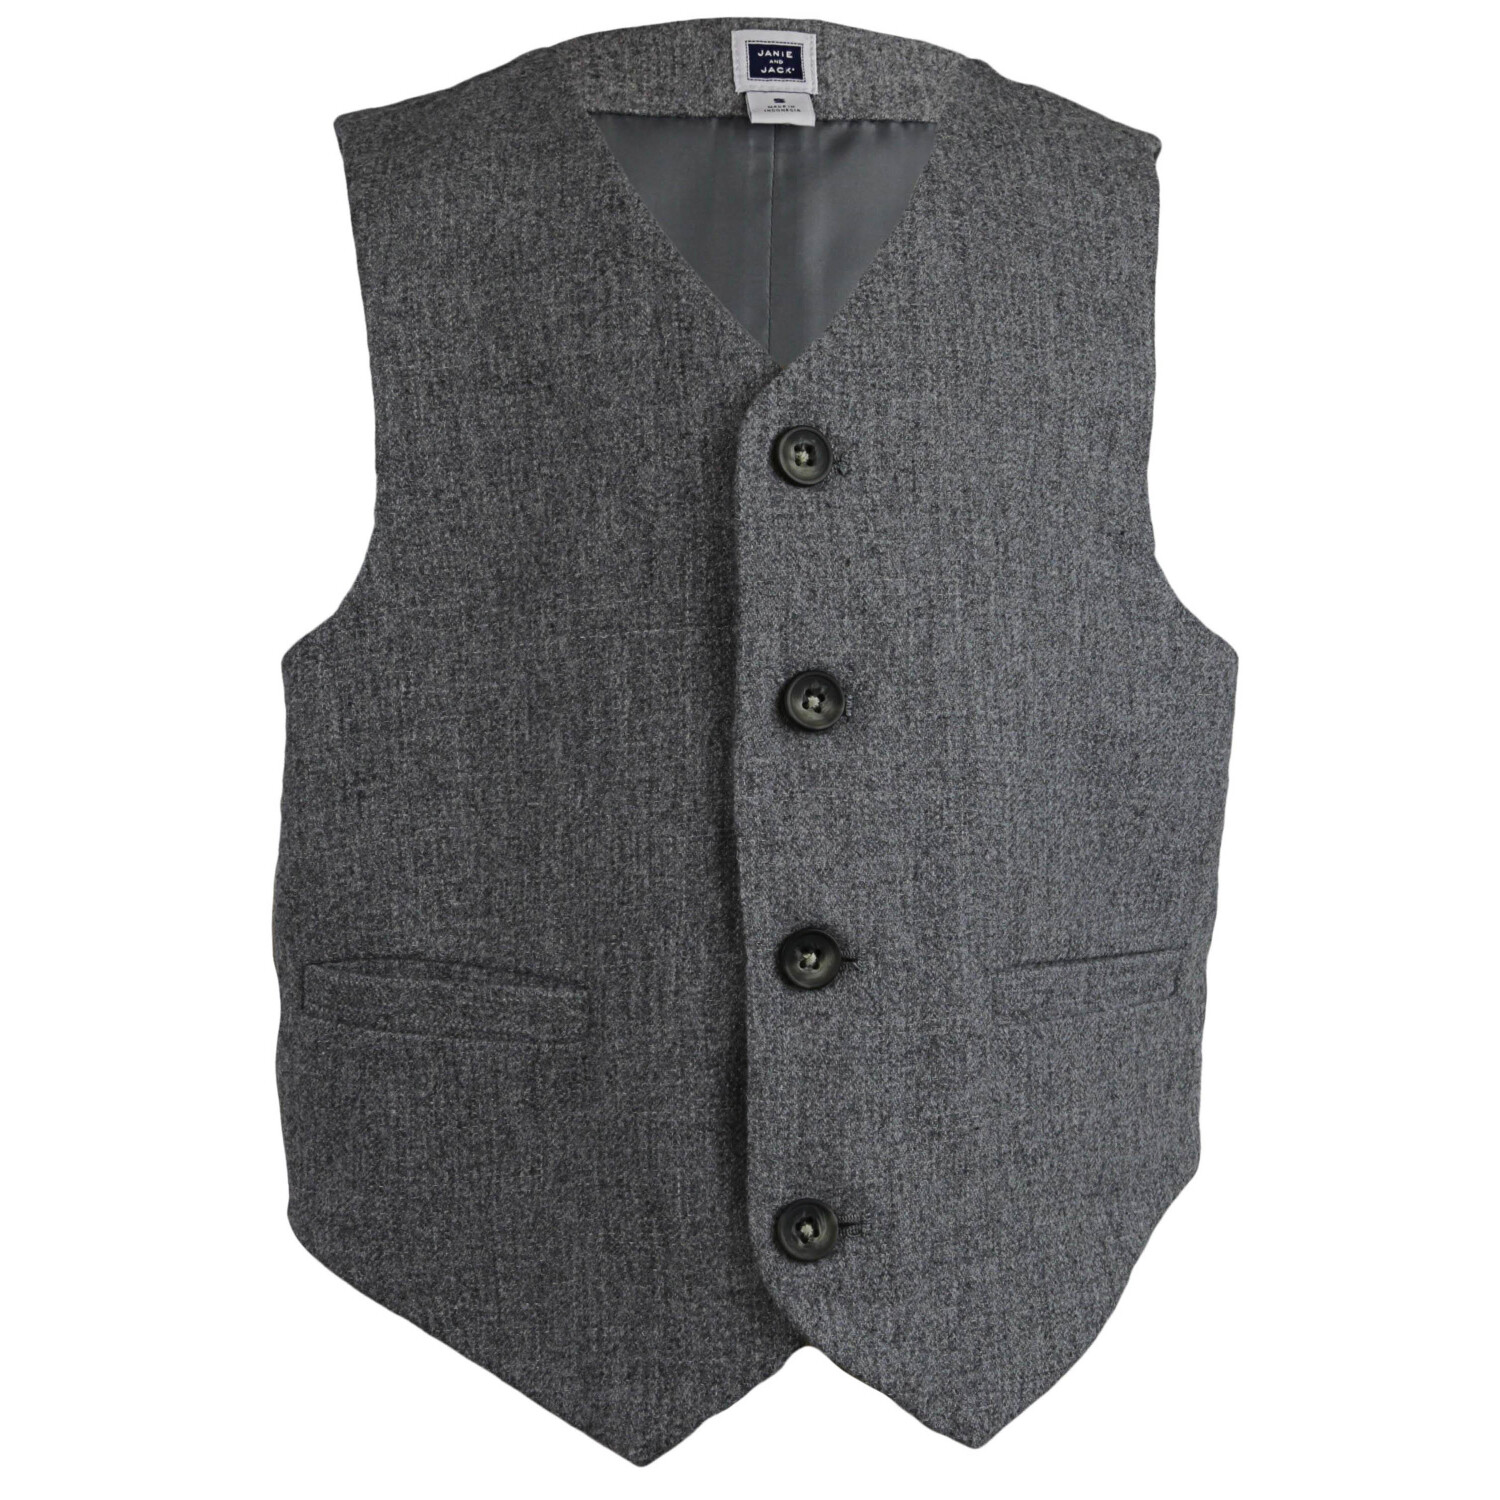 Janie And Jack Boy's Grey Wool Suit Vest - 6-12 Months